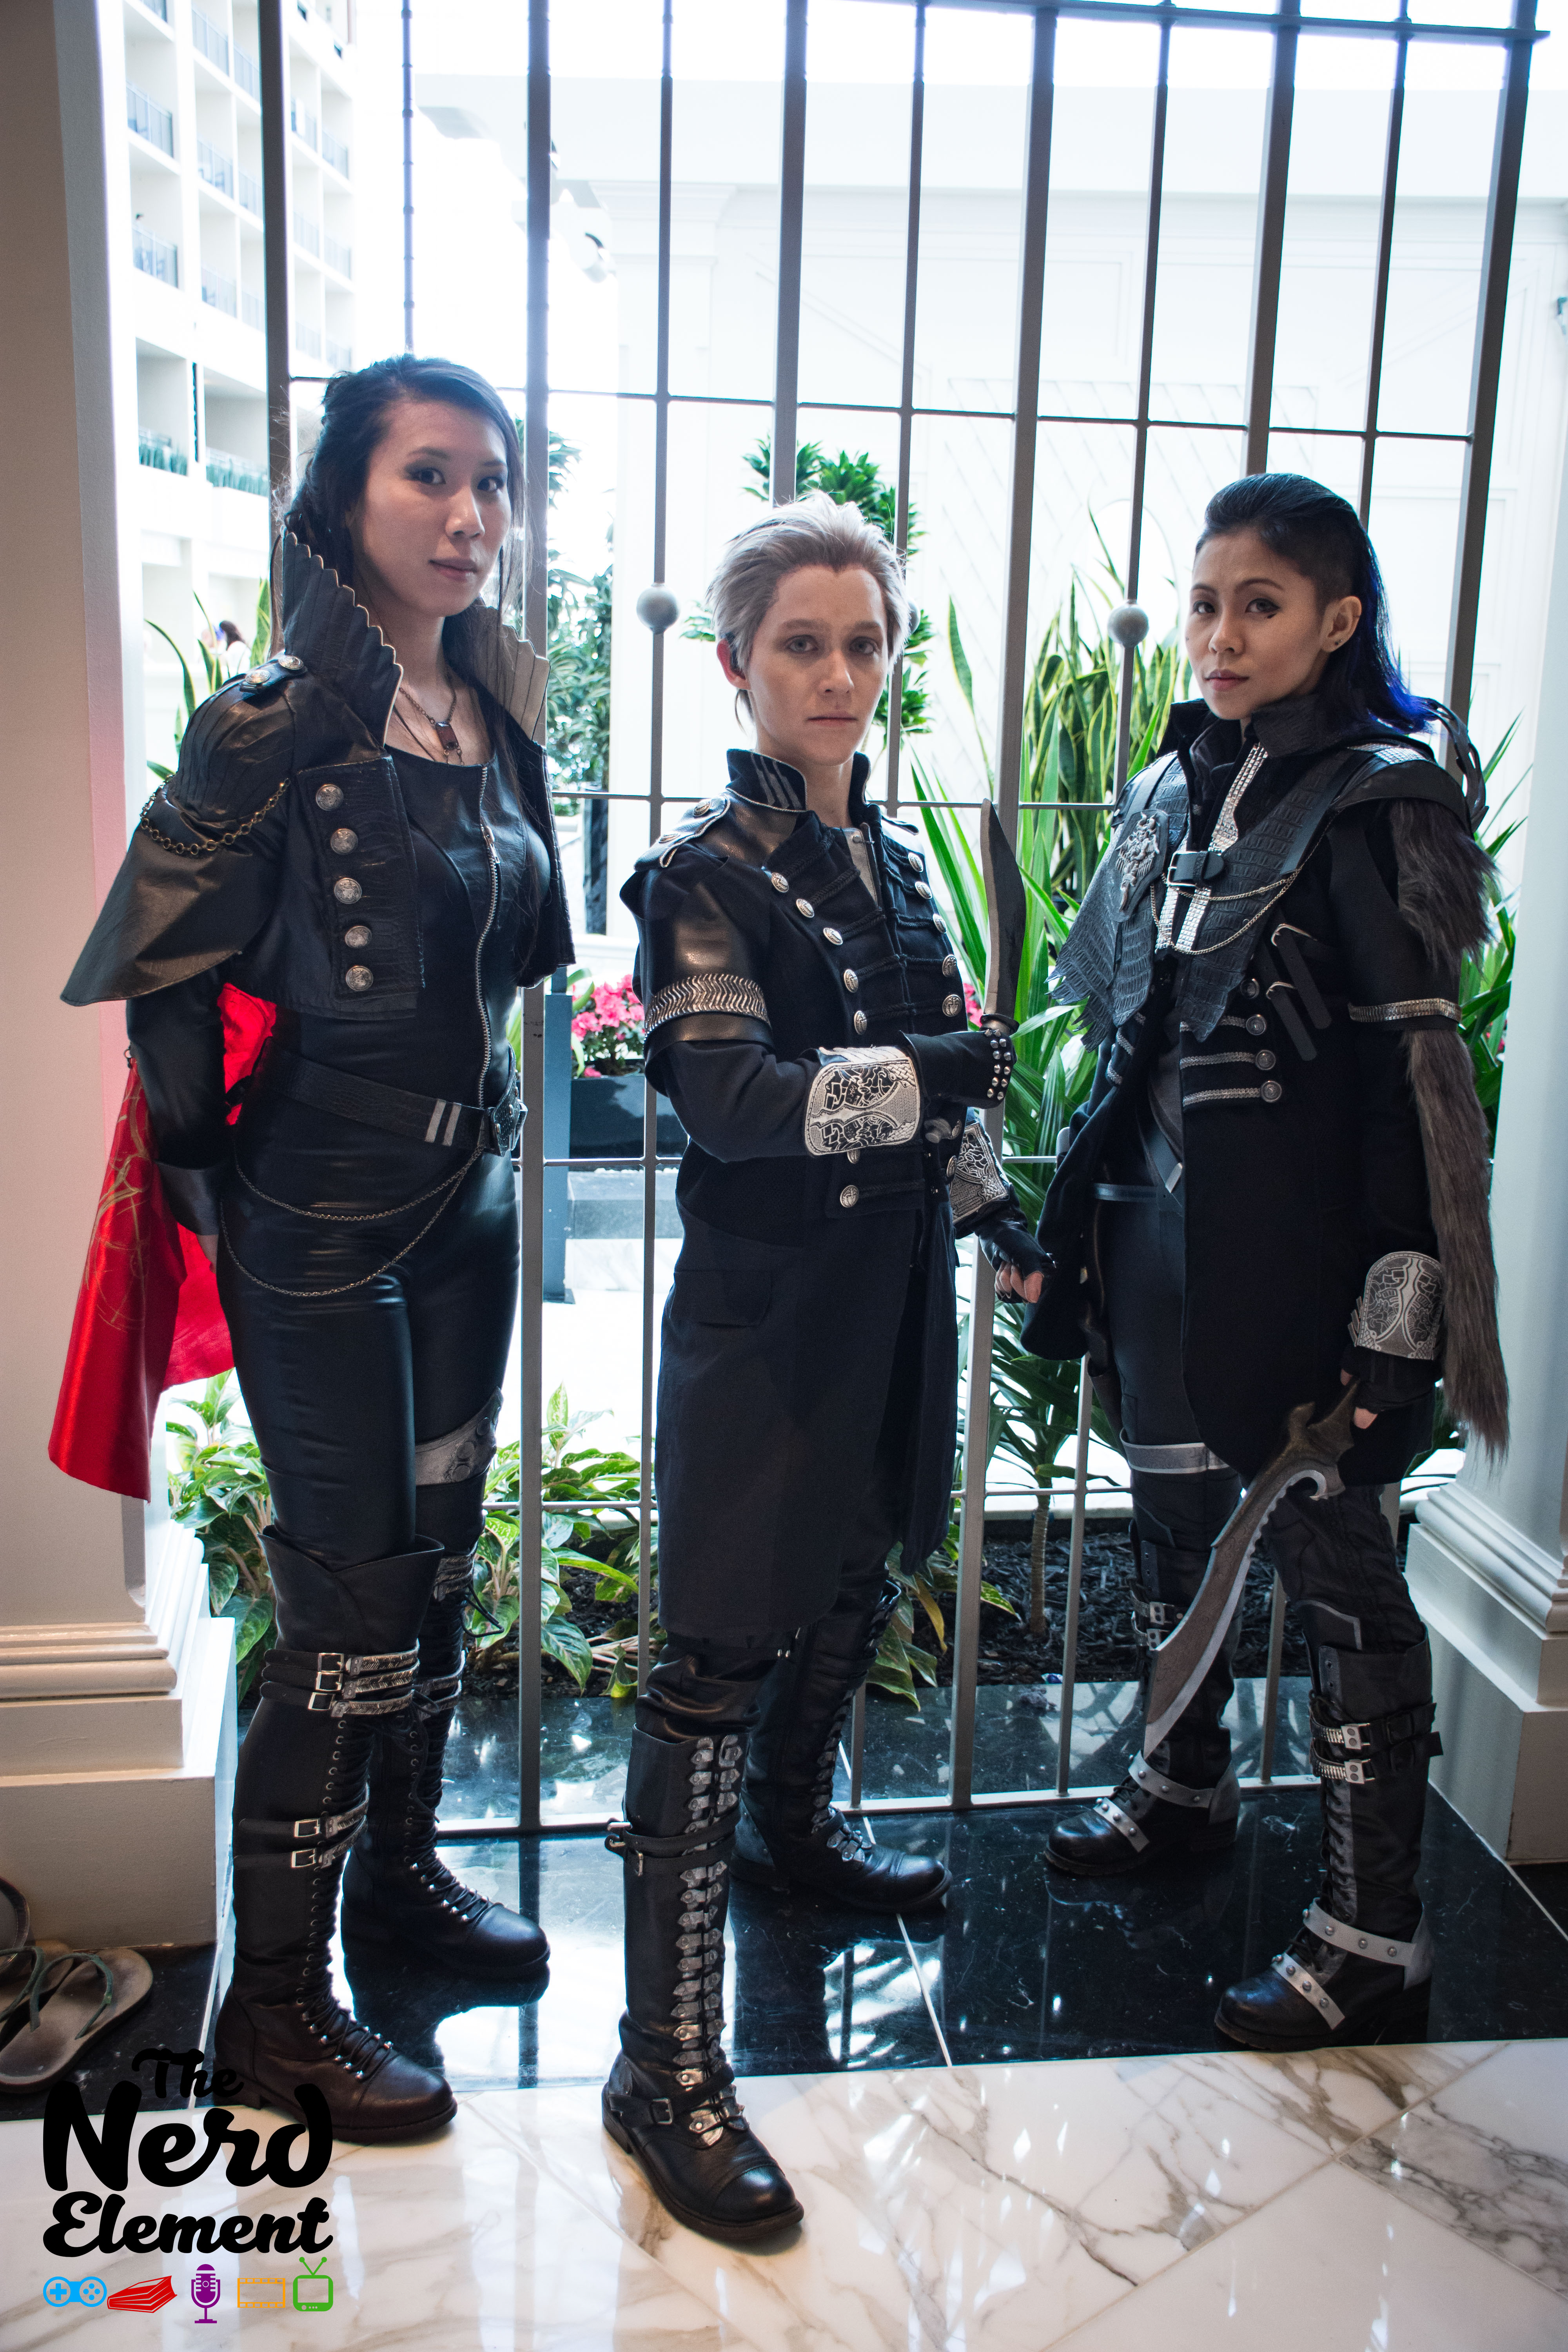 Crowe. Luche, and Nyx - Final Fantasy XV: Kingslglaive  Cosplayers: @somaruyoh, @chibidudecosplay @lacee_girl (All instagram)